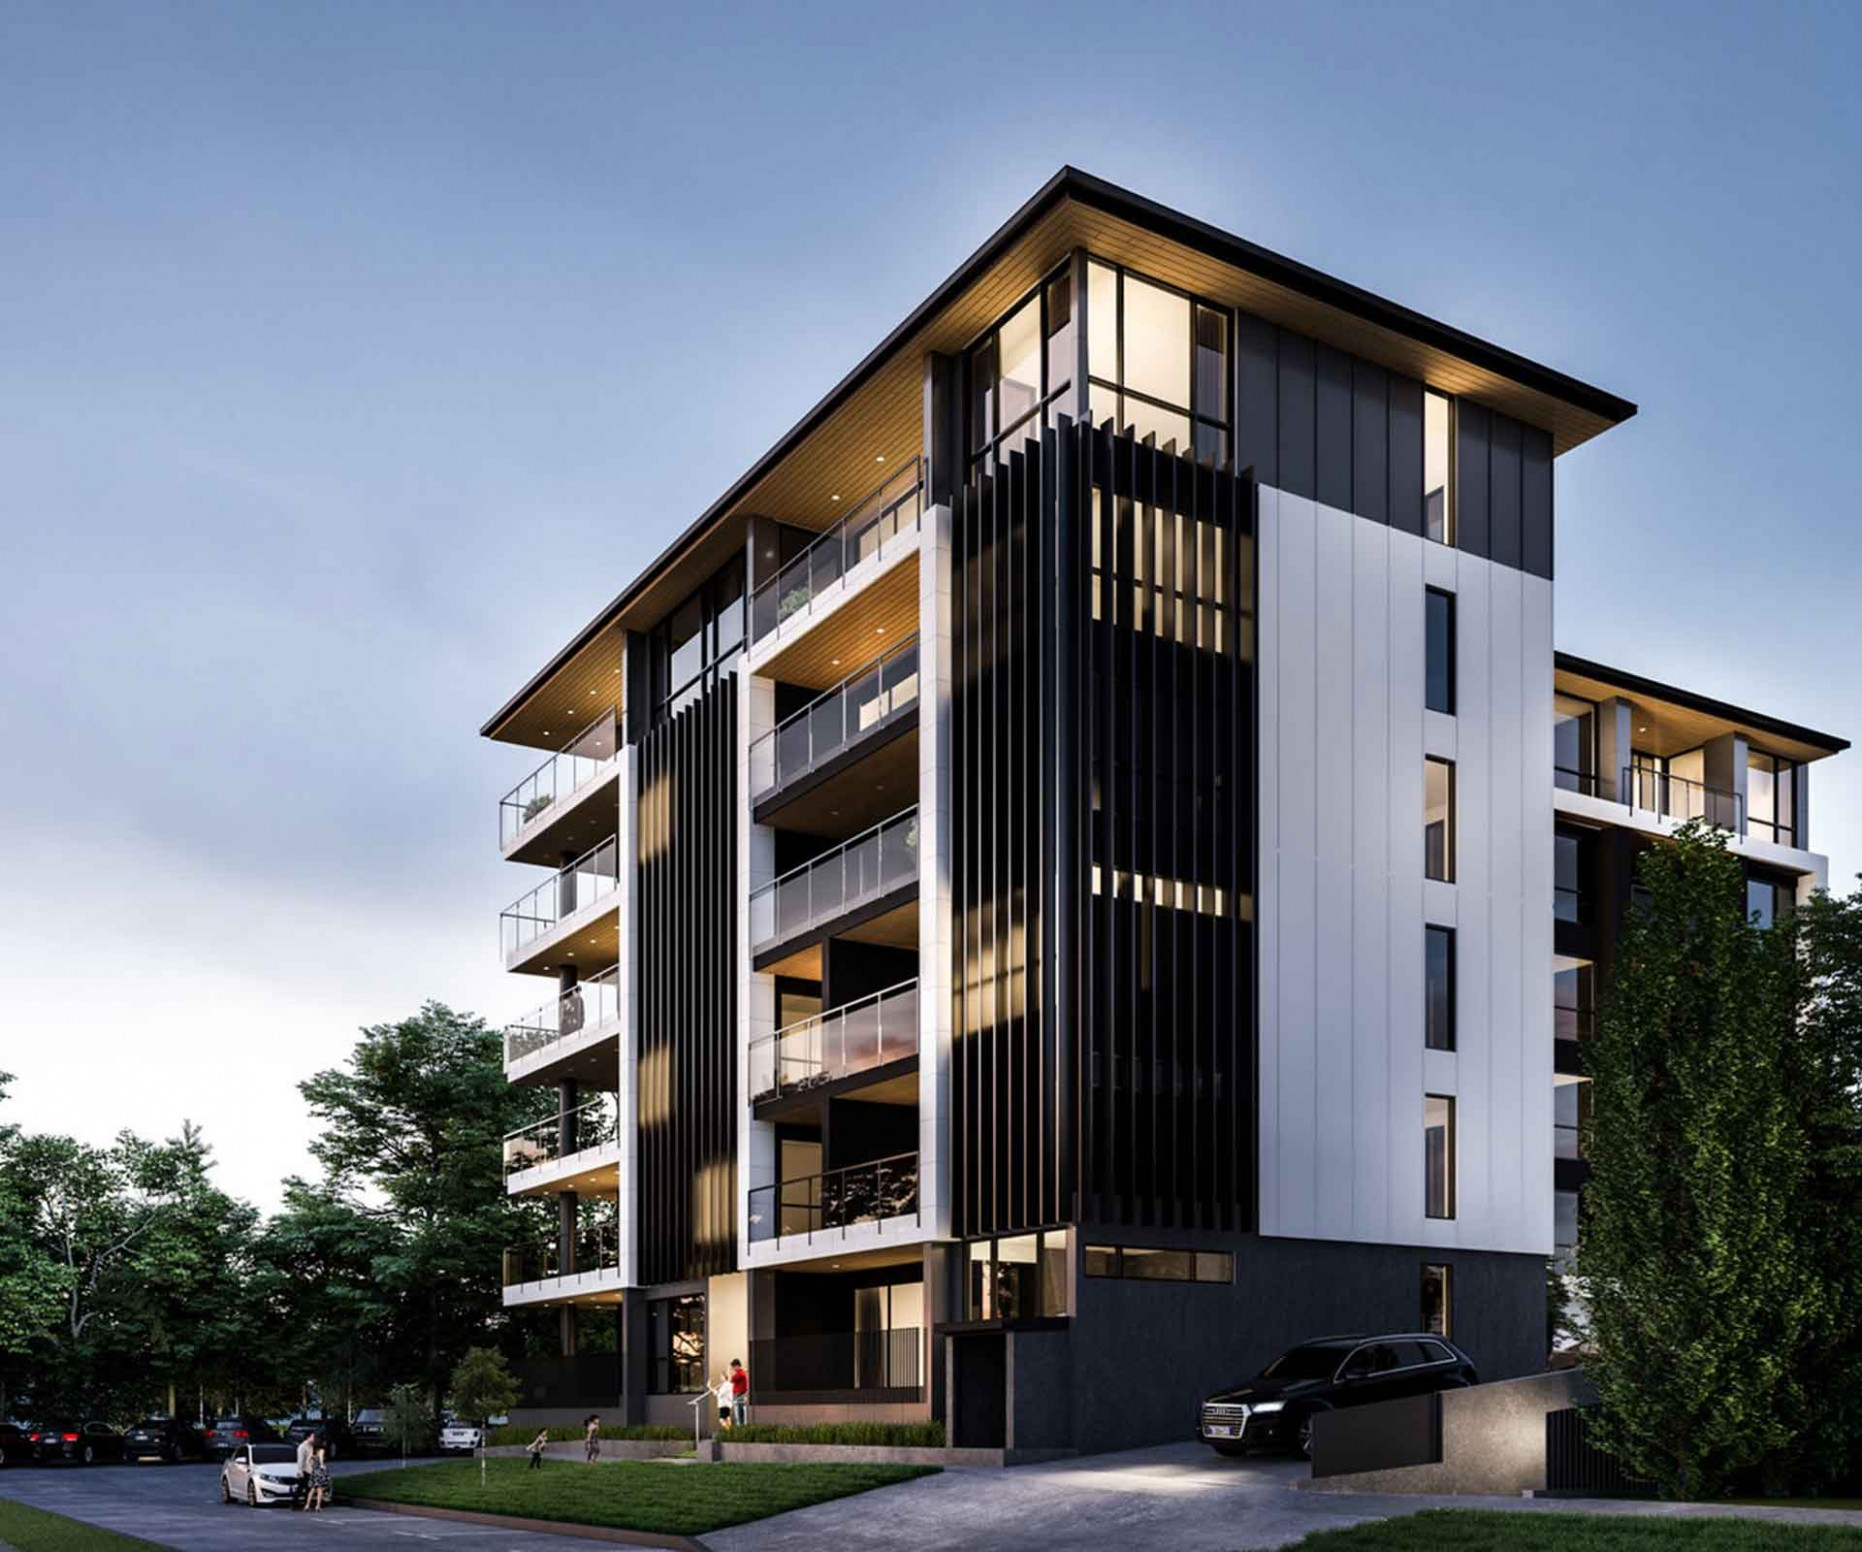 12 off-the-plan apartments for sale around New Zealand you need to know - Apartment Design Nz